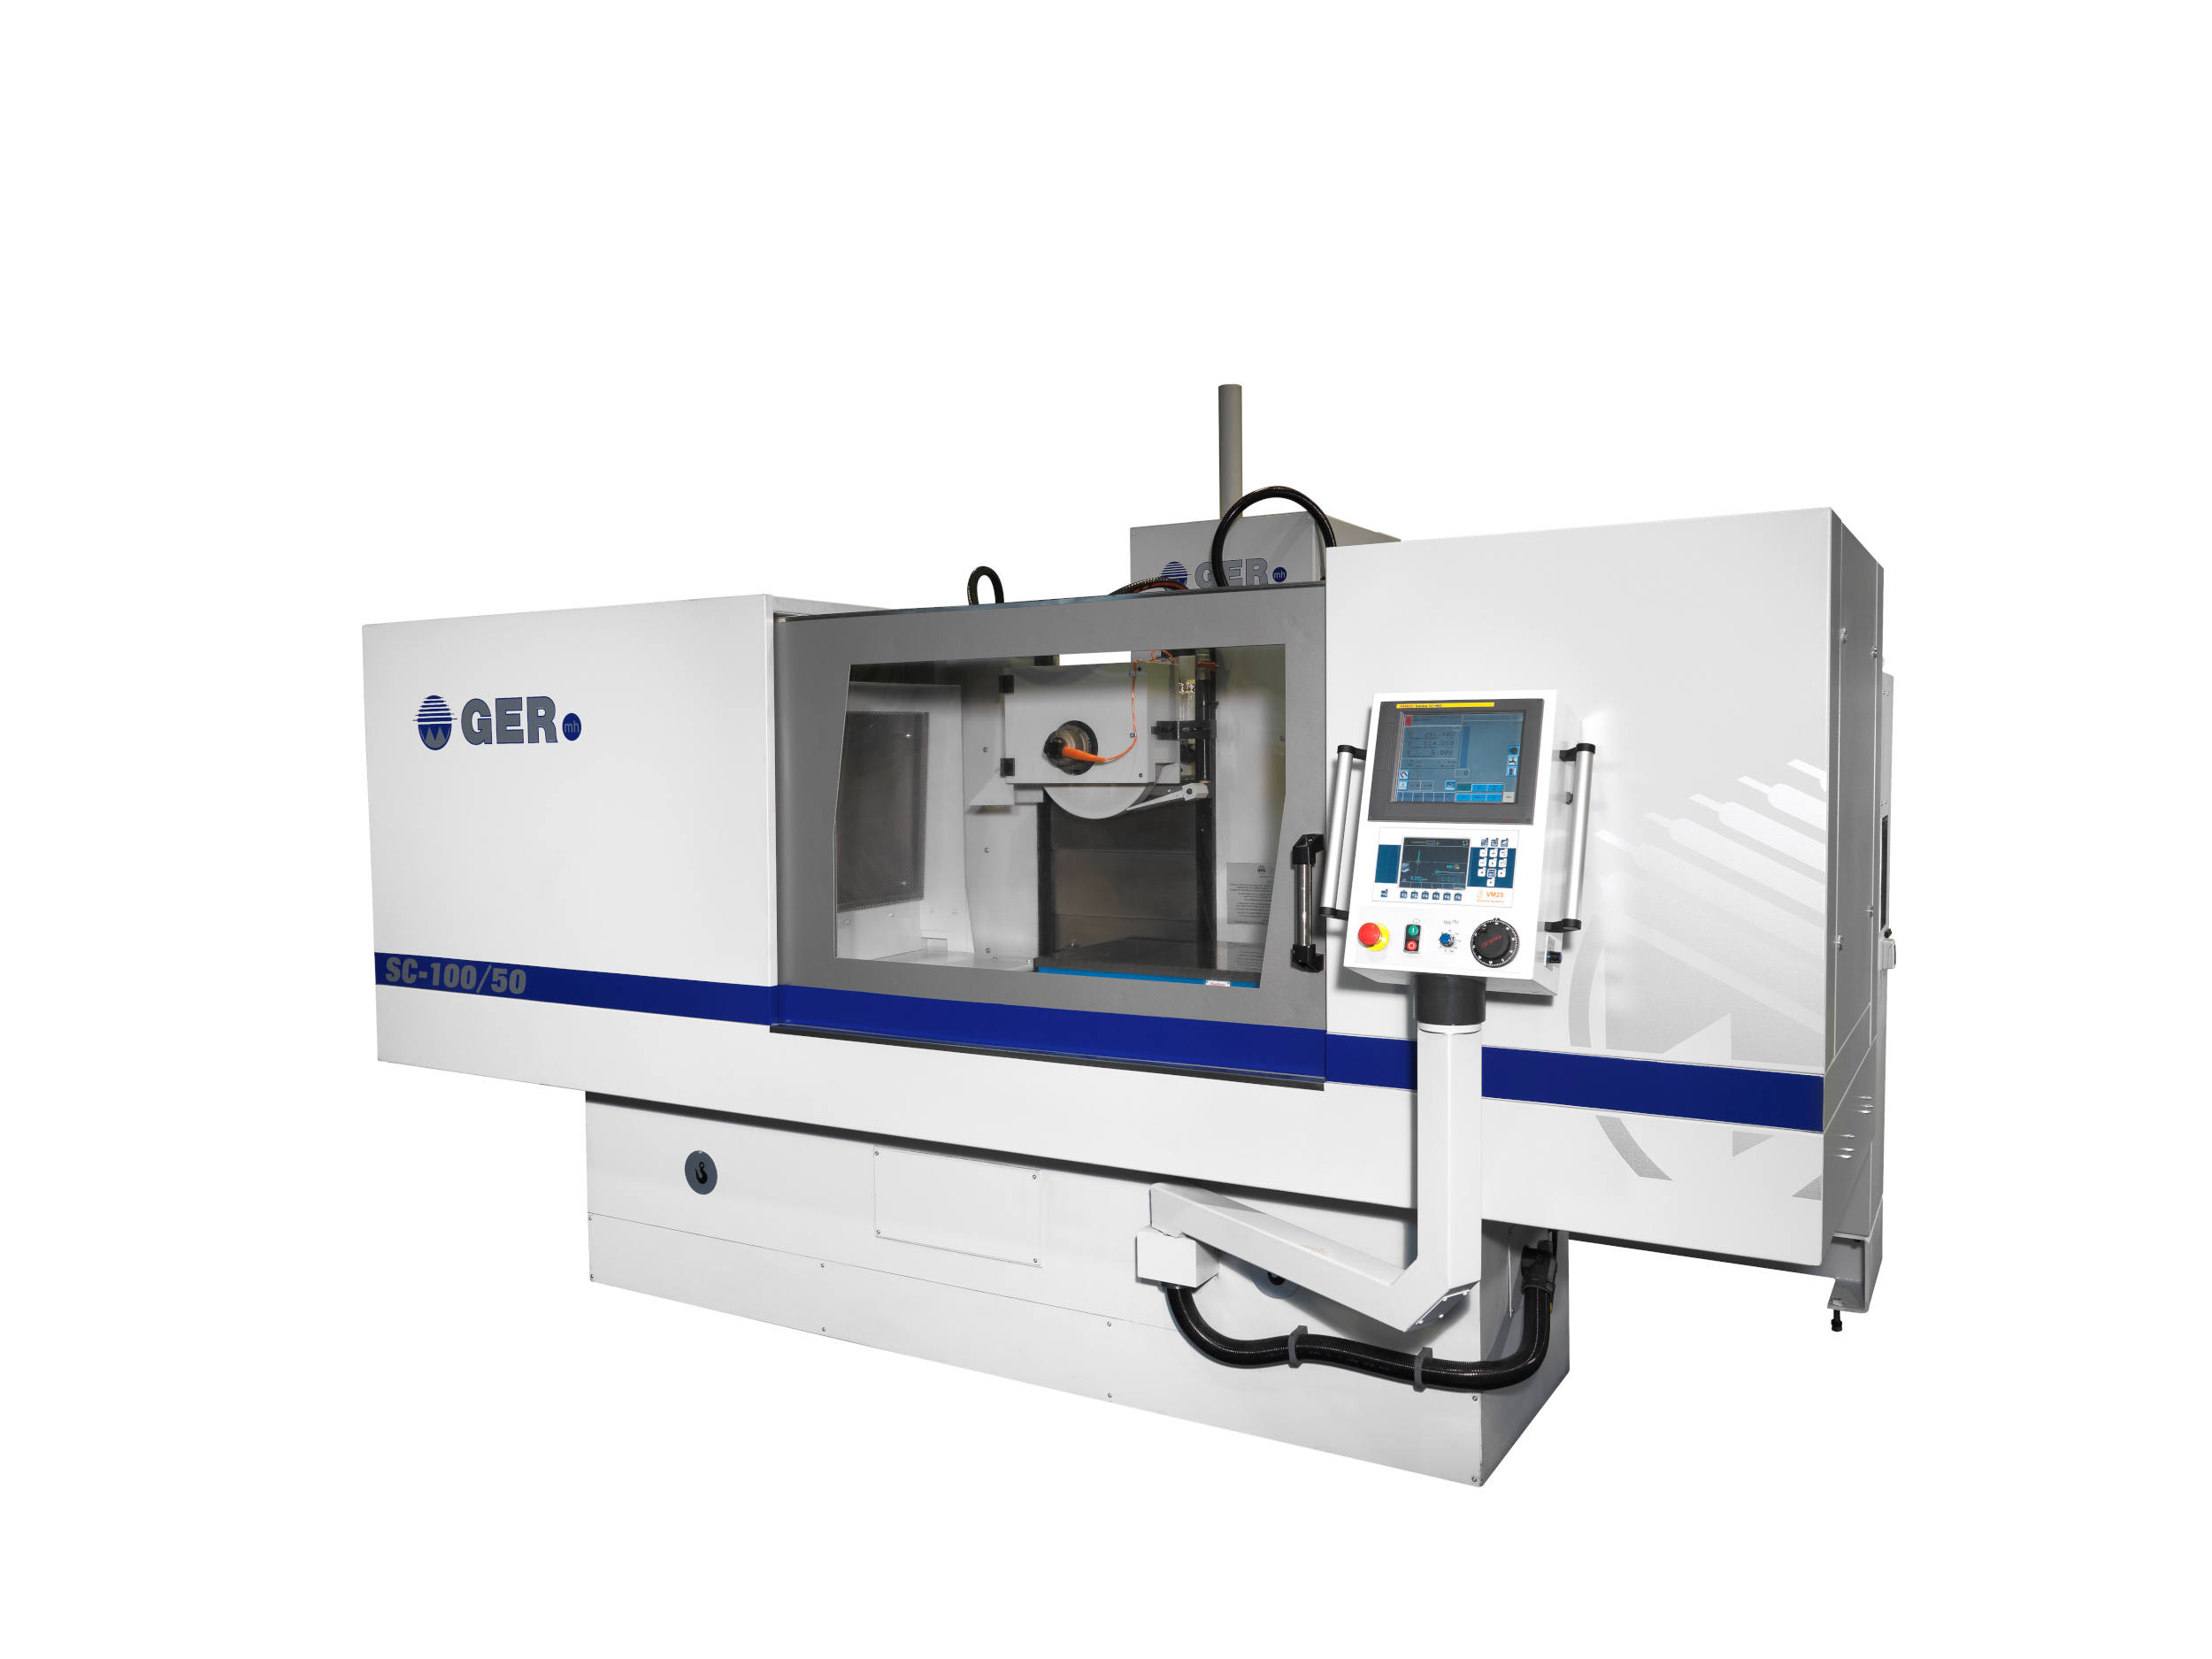 Horizontal spindle surface grinding machines GER_06